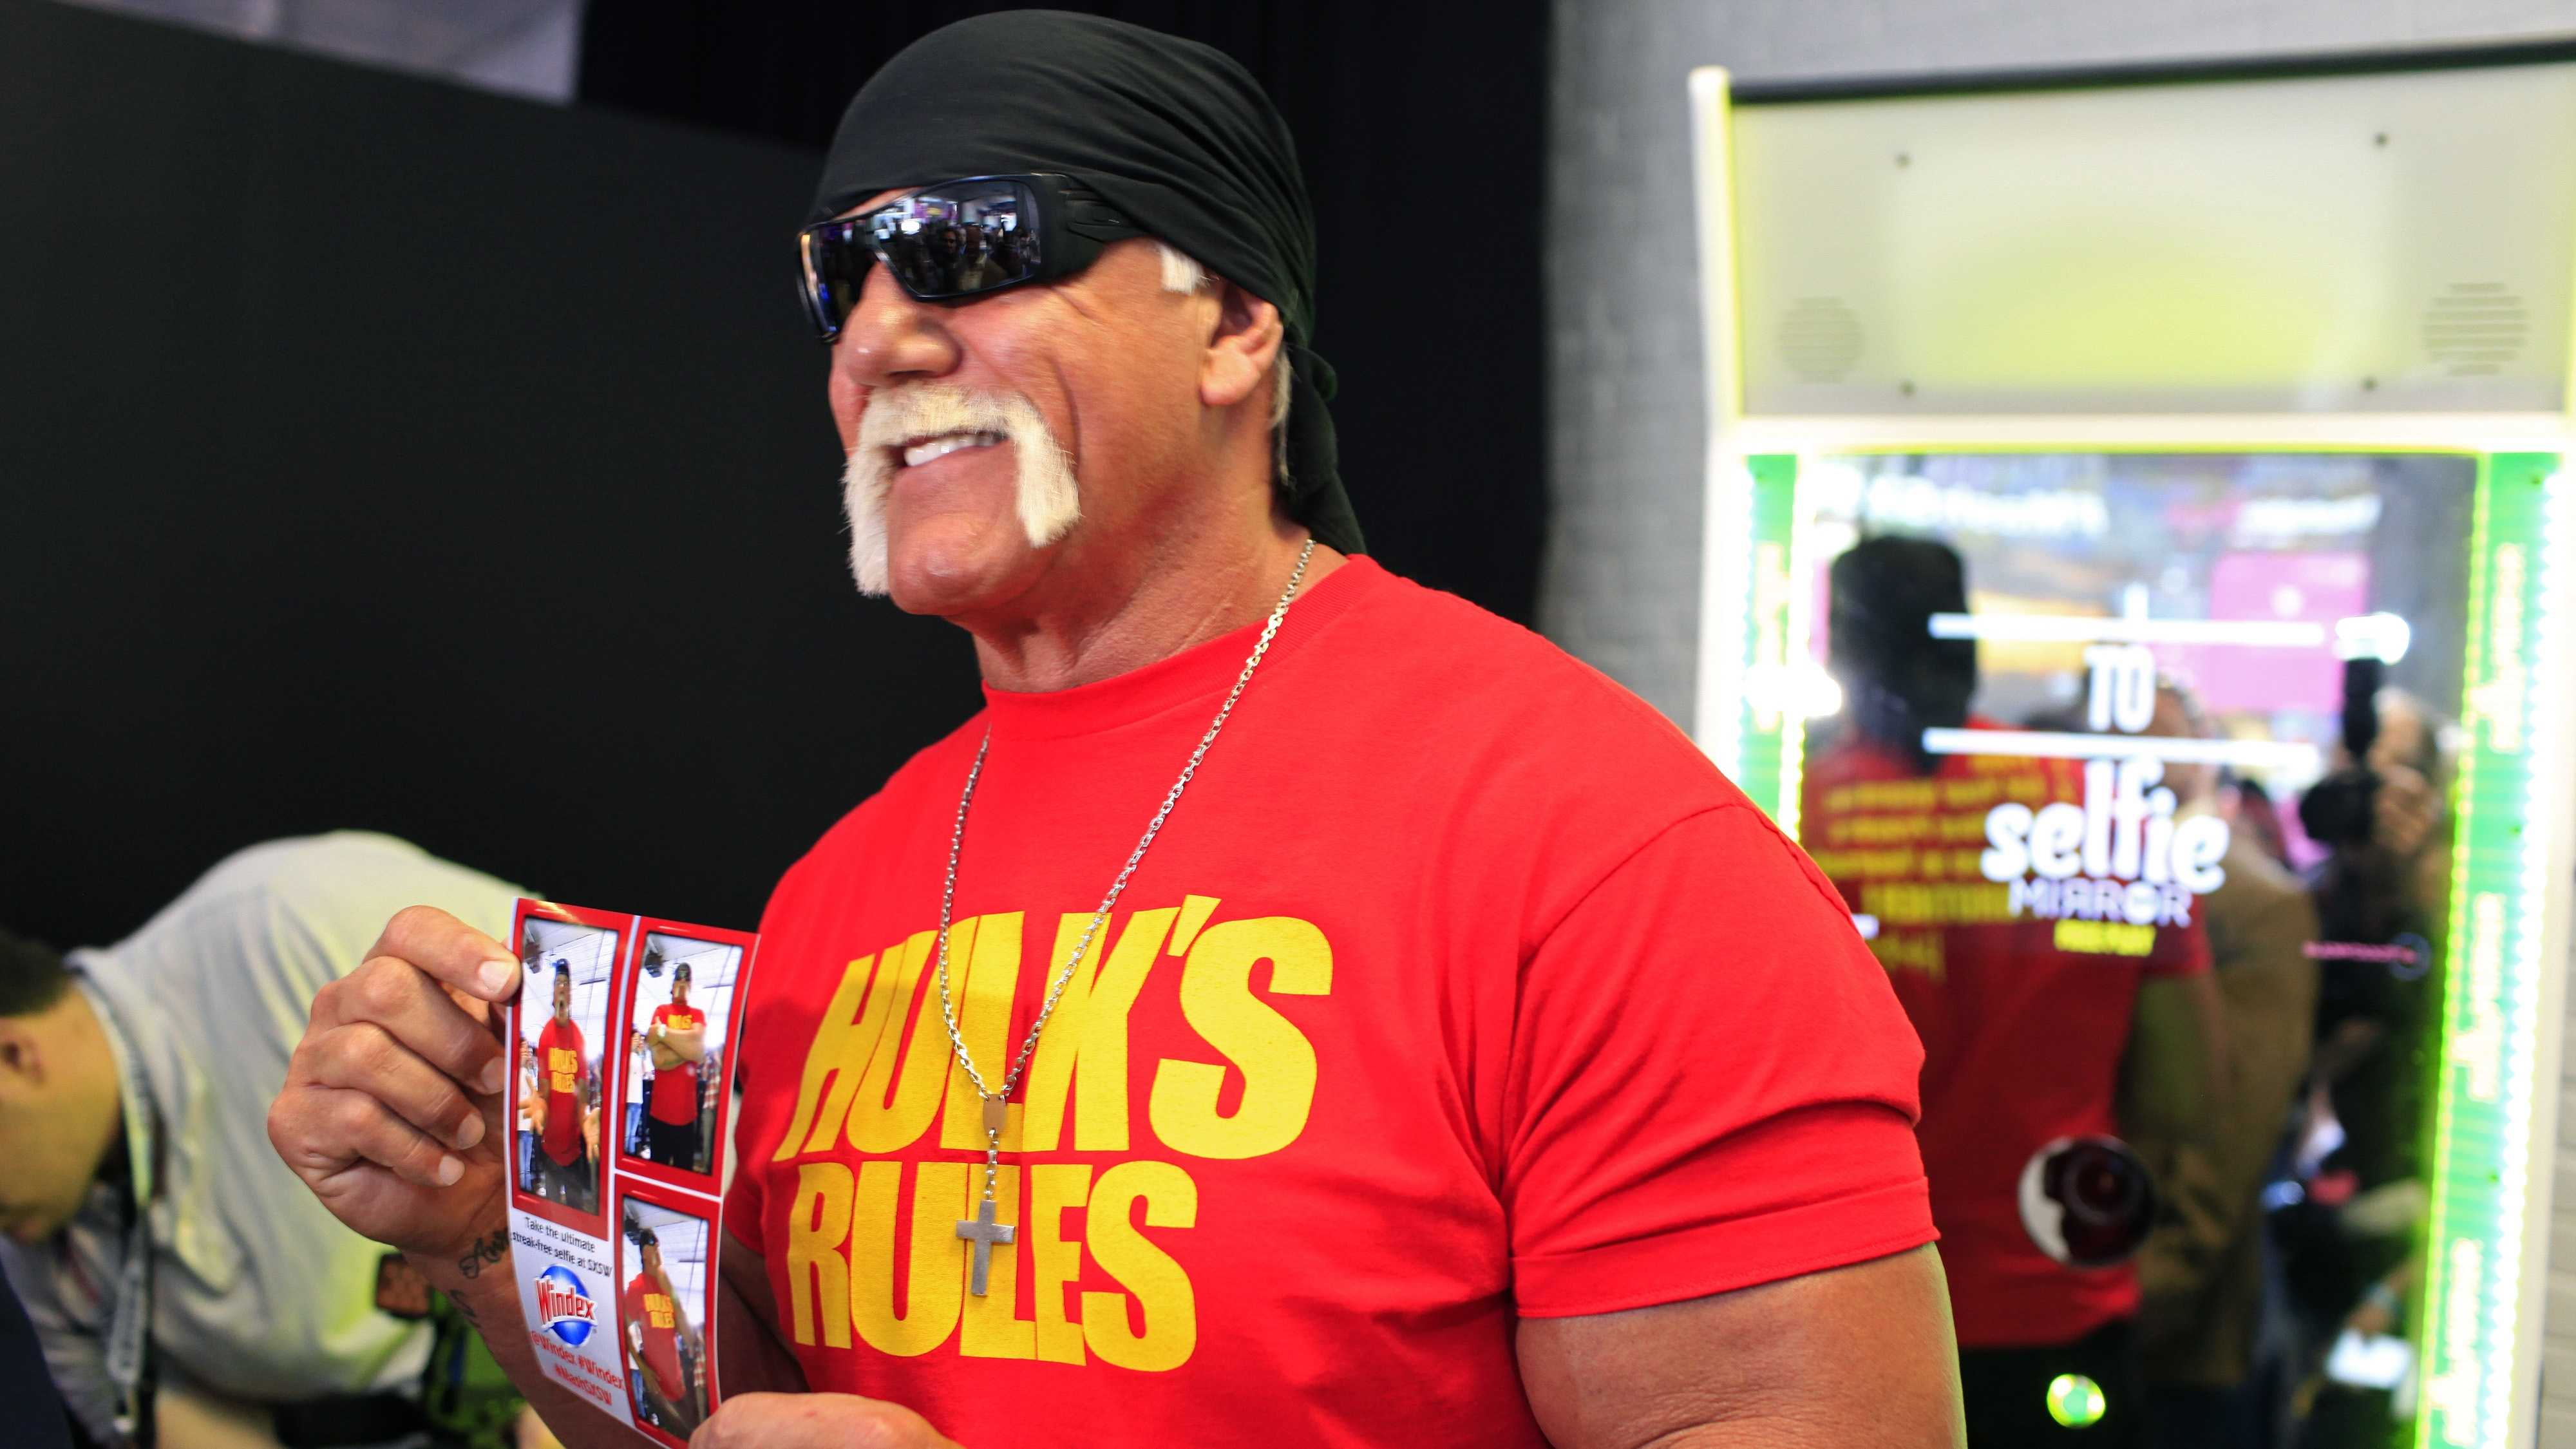 Professional wrestler Hulk Hogan has been fired by World Wrestling Entertainment.